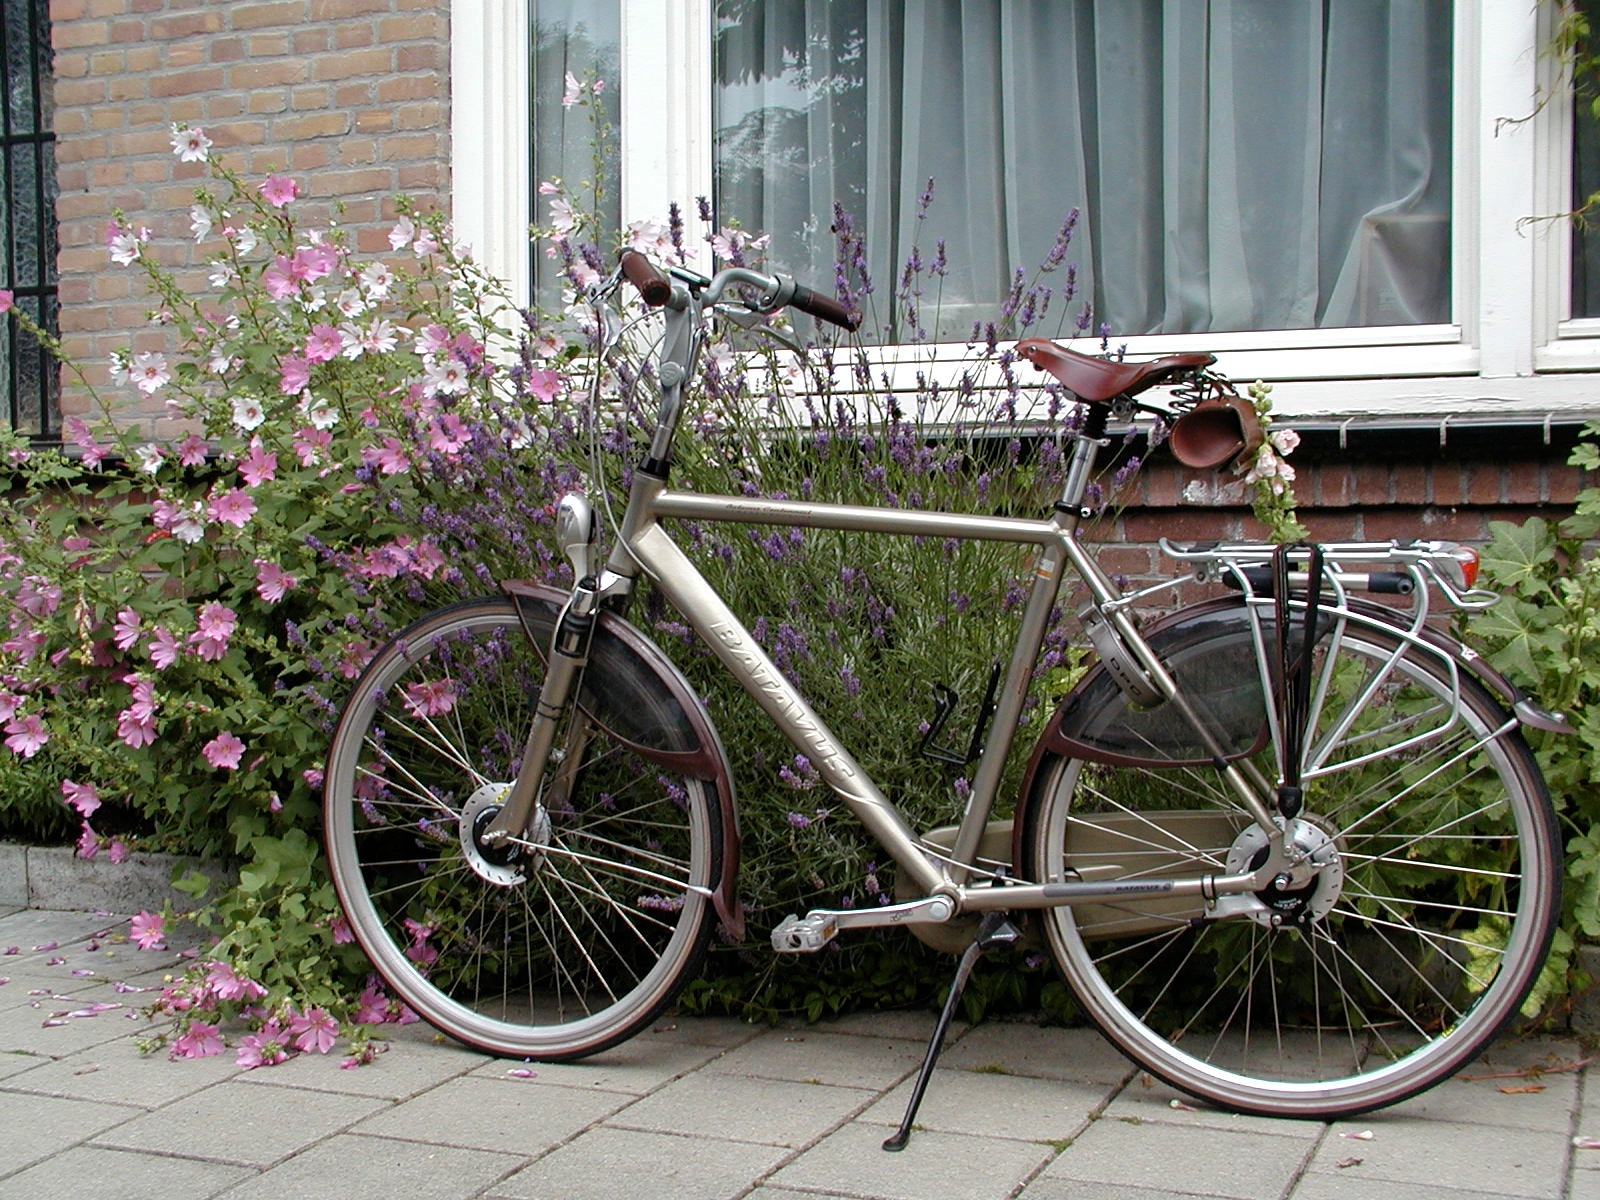 a new bike author lucke charlie parked next to